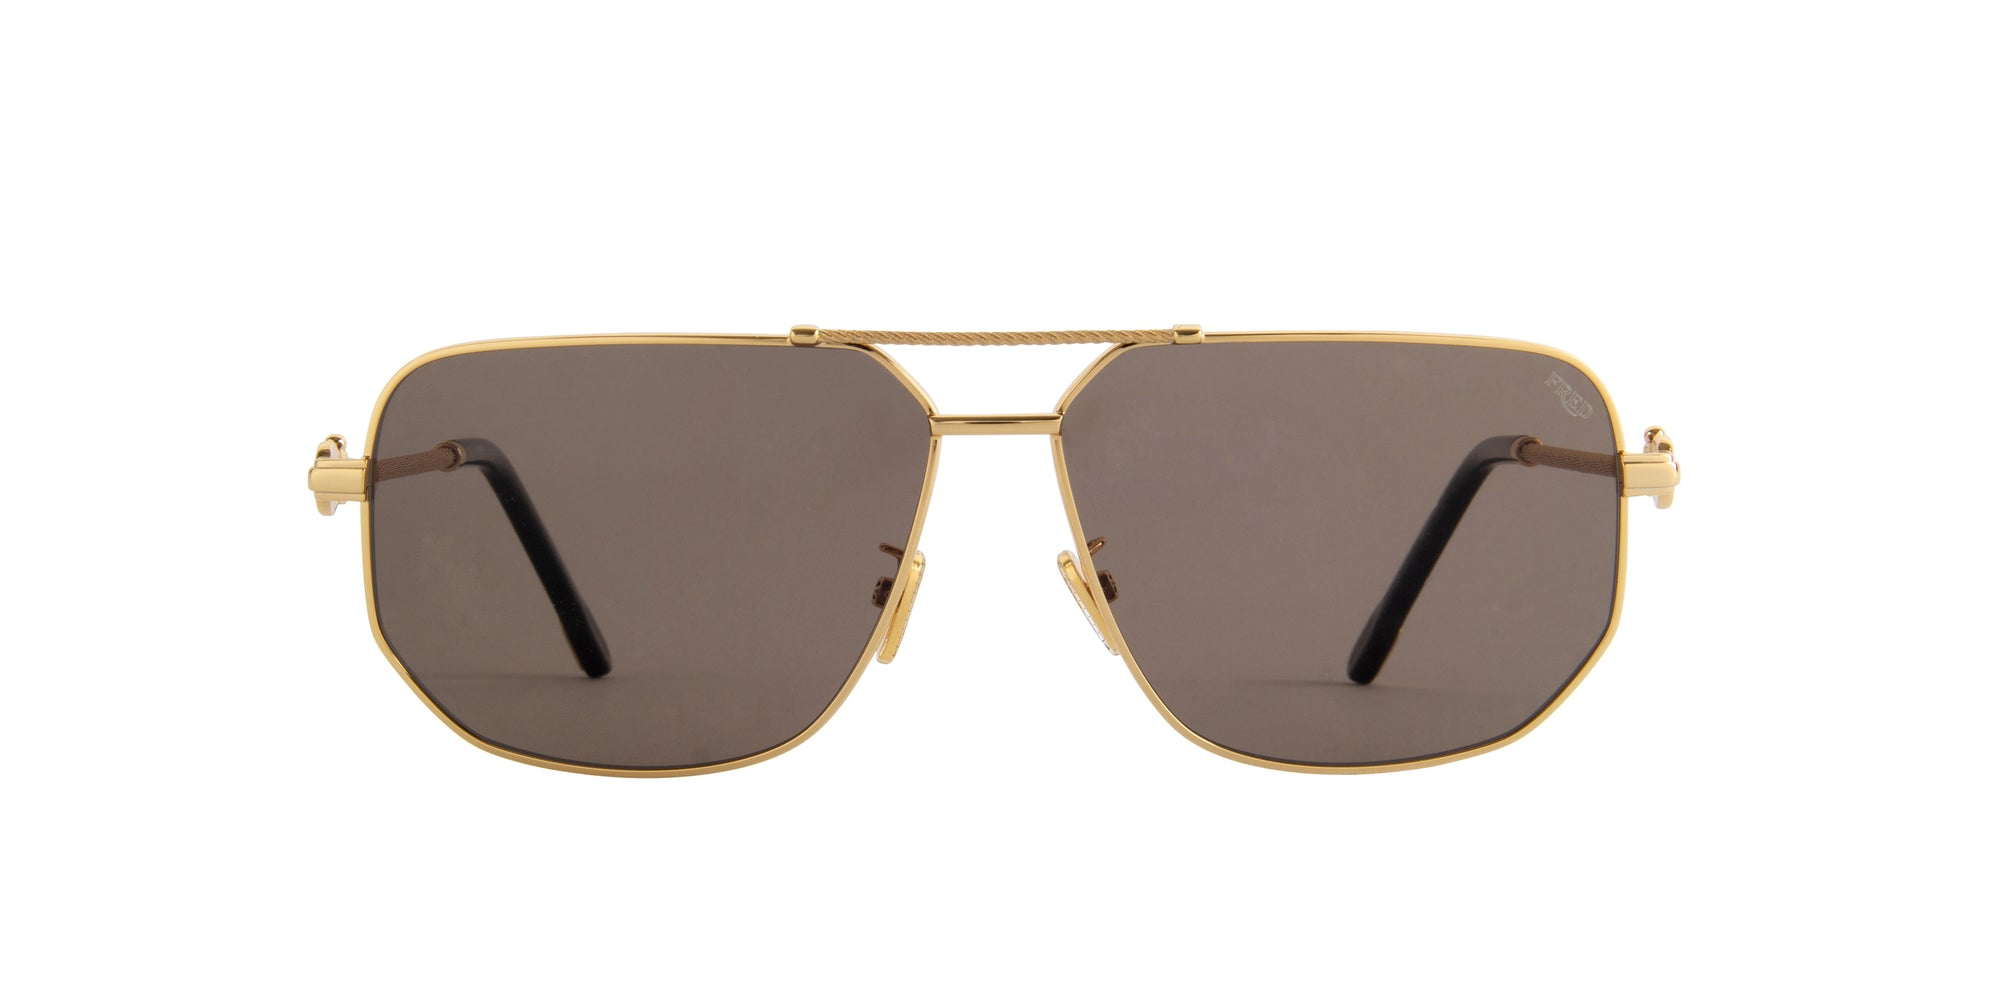 Fred - FG40013U Shiny Endura Gold Aviator Men Sunglasses - 62mm-Sunglasses-Designer Eyes